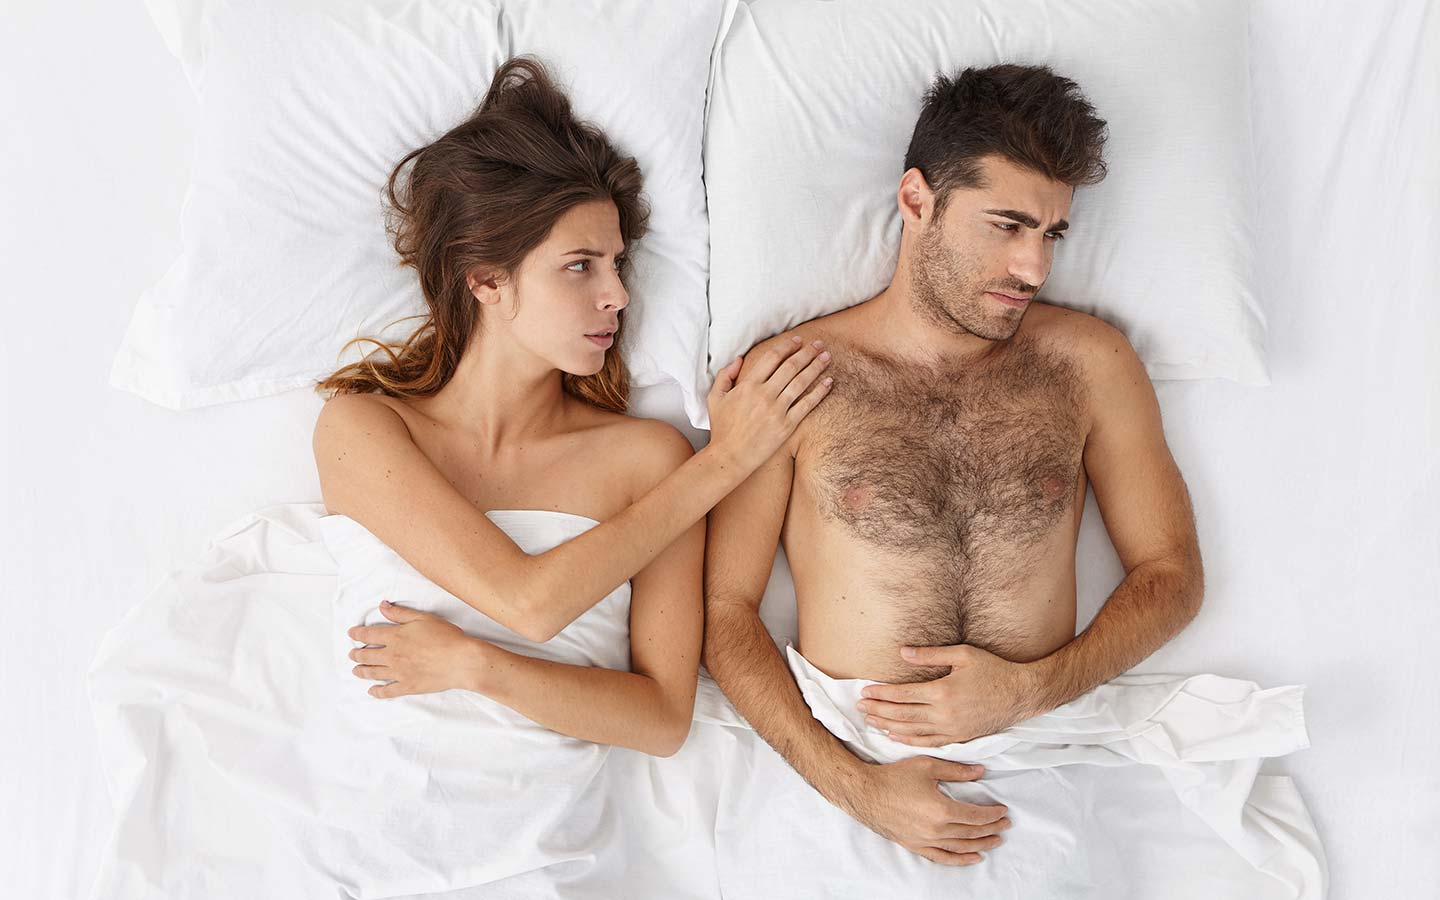 I have a partner who isn't as enthusiastic about sex. What do I do?